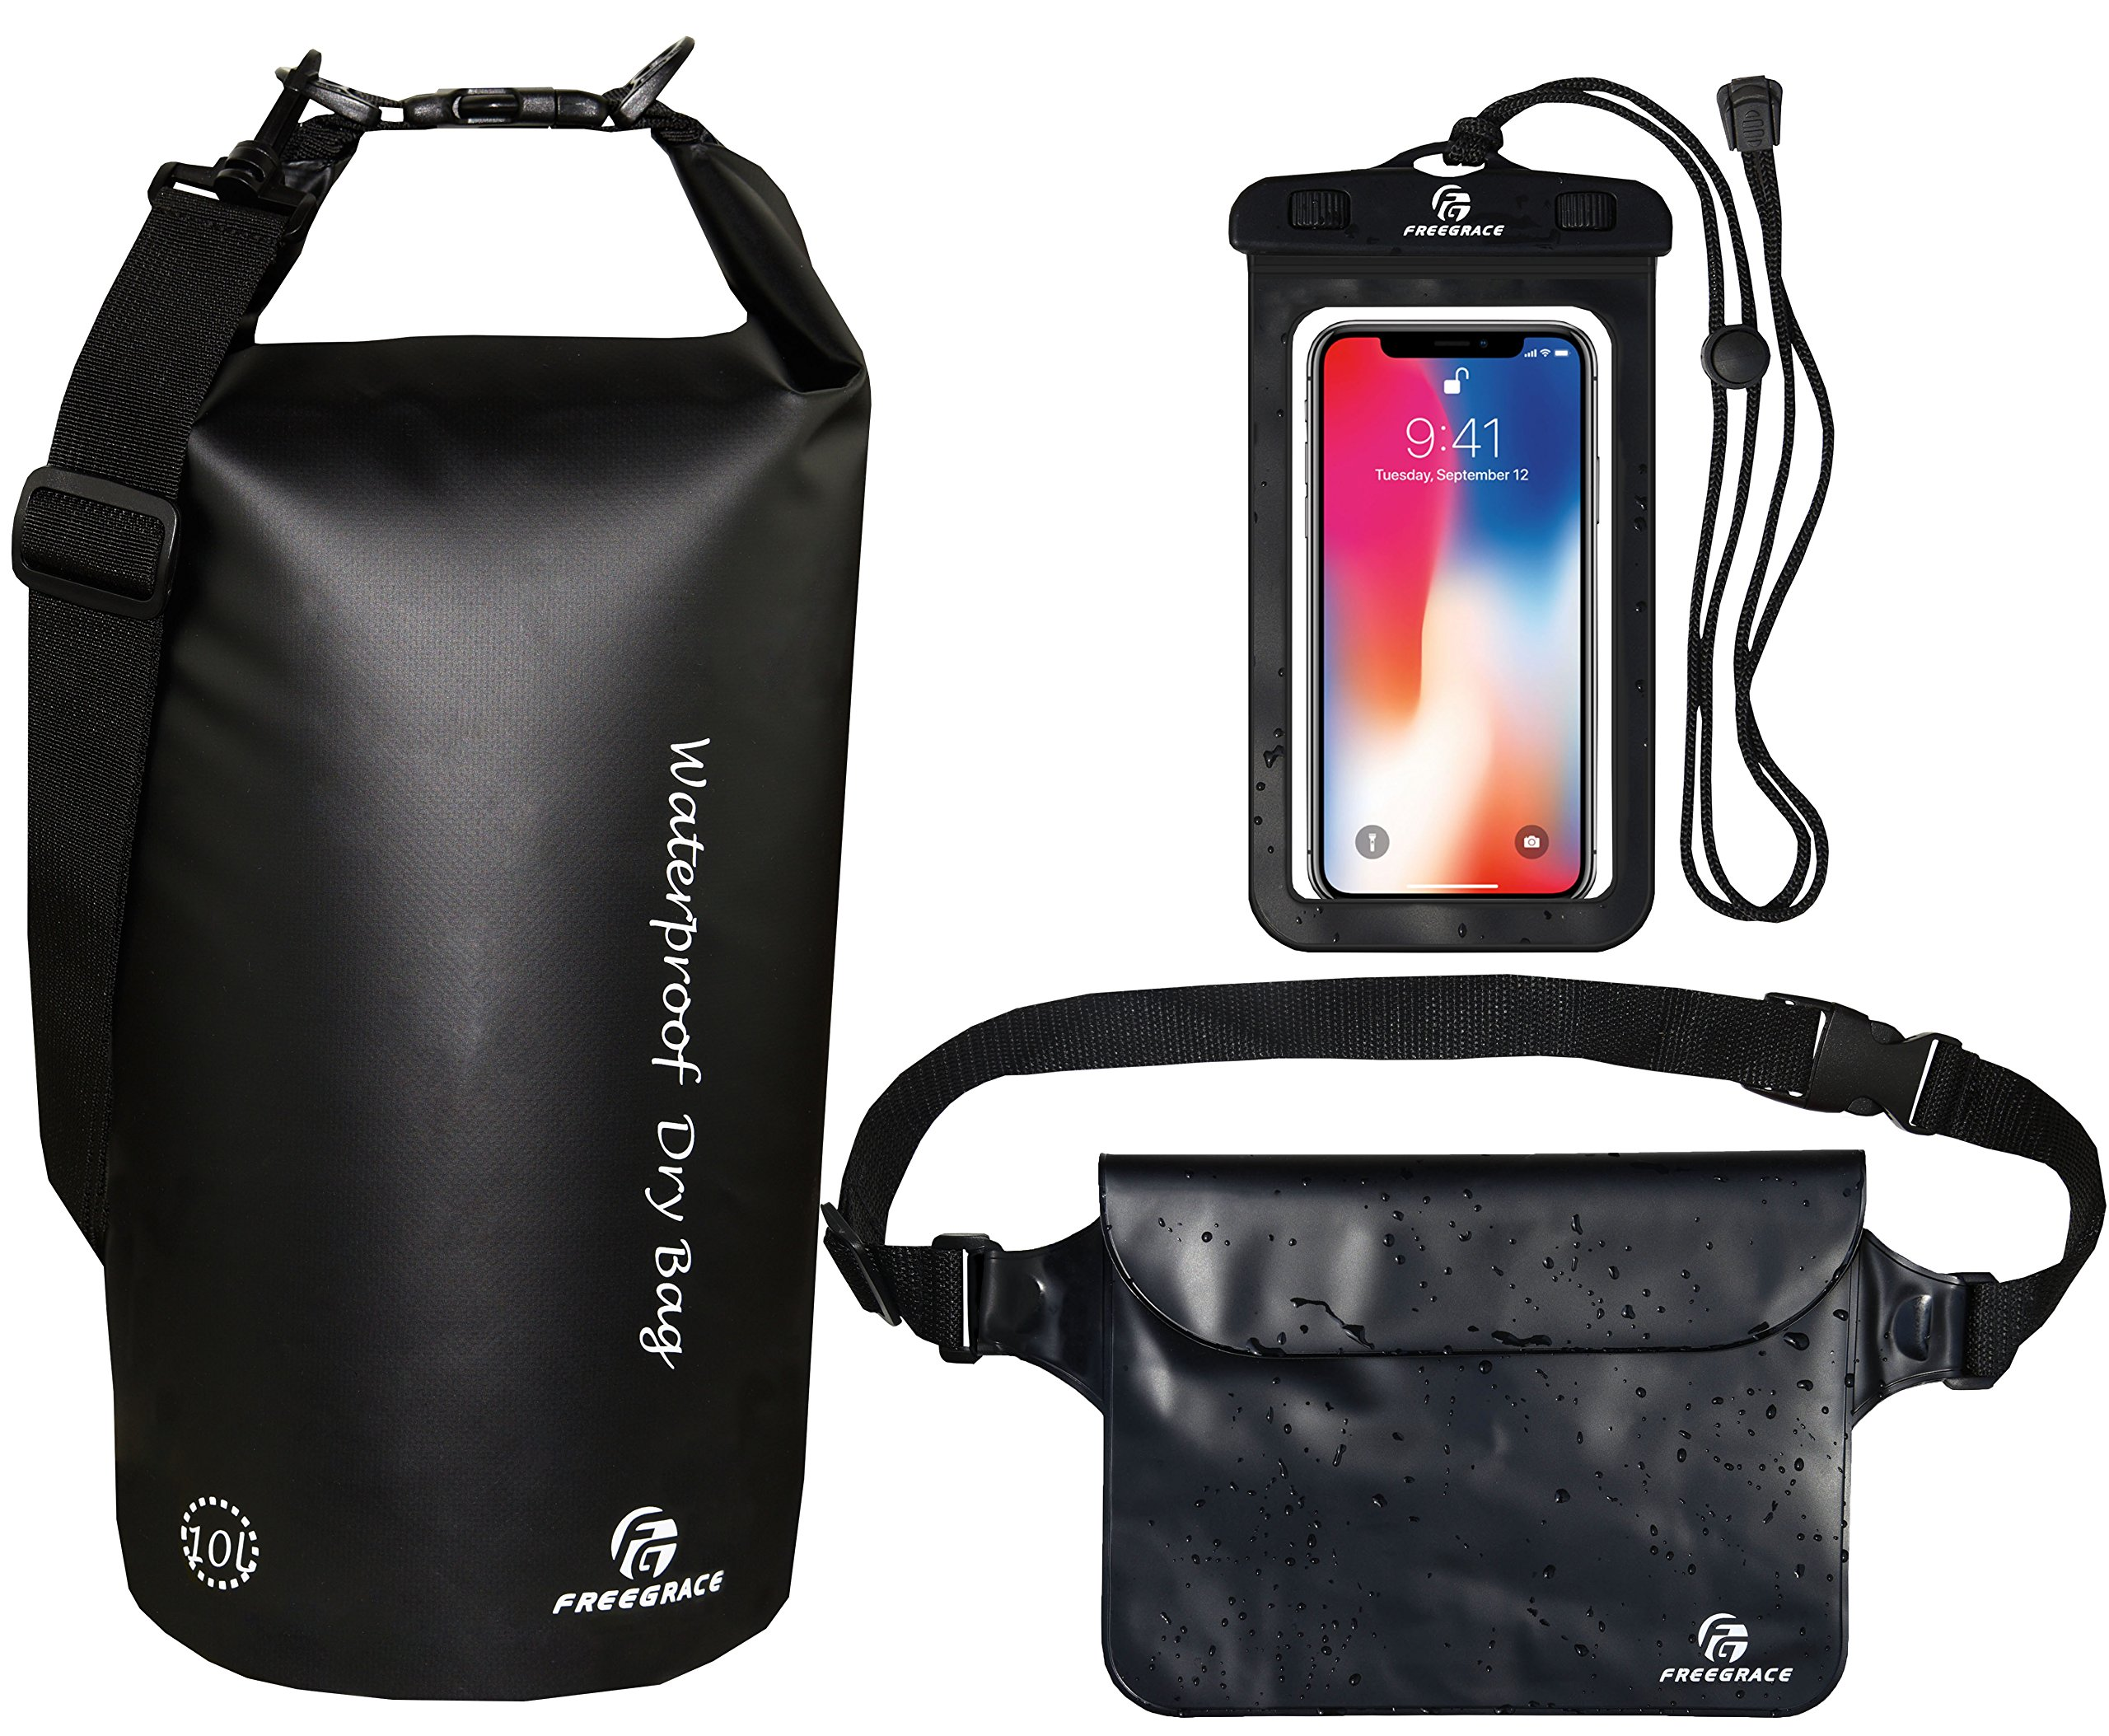 Freegrace Waterproof Dry Bags Set of 3 Dry Bag with 2 Zip Lock Seals & Detachable Shoulder Strap, Waist Pouch & Phone Case - Can Be Submerged Into Water (Black, 20L)